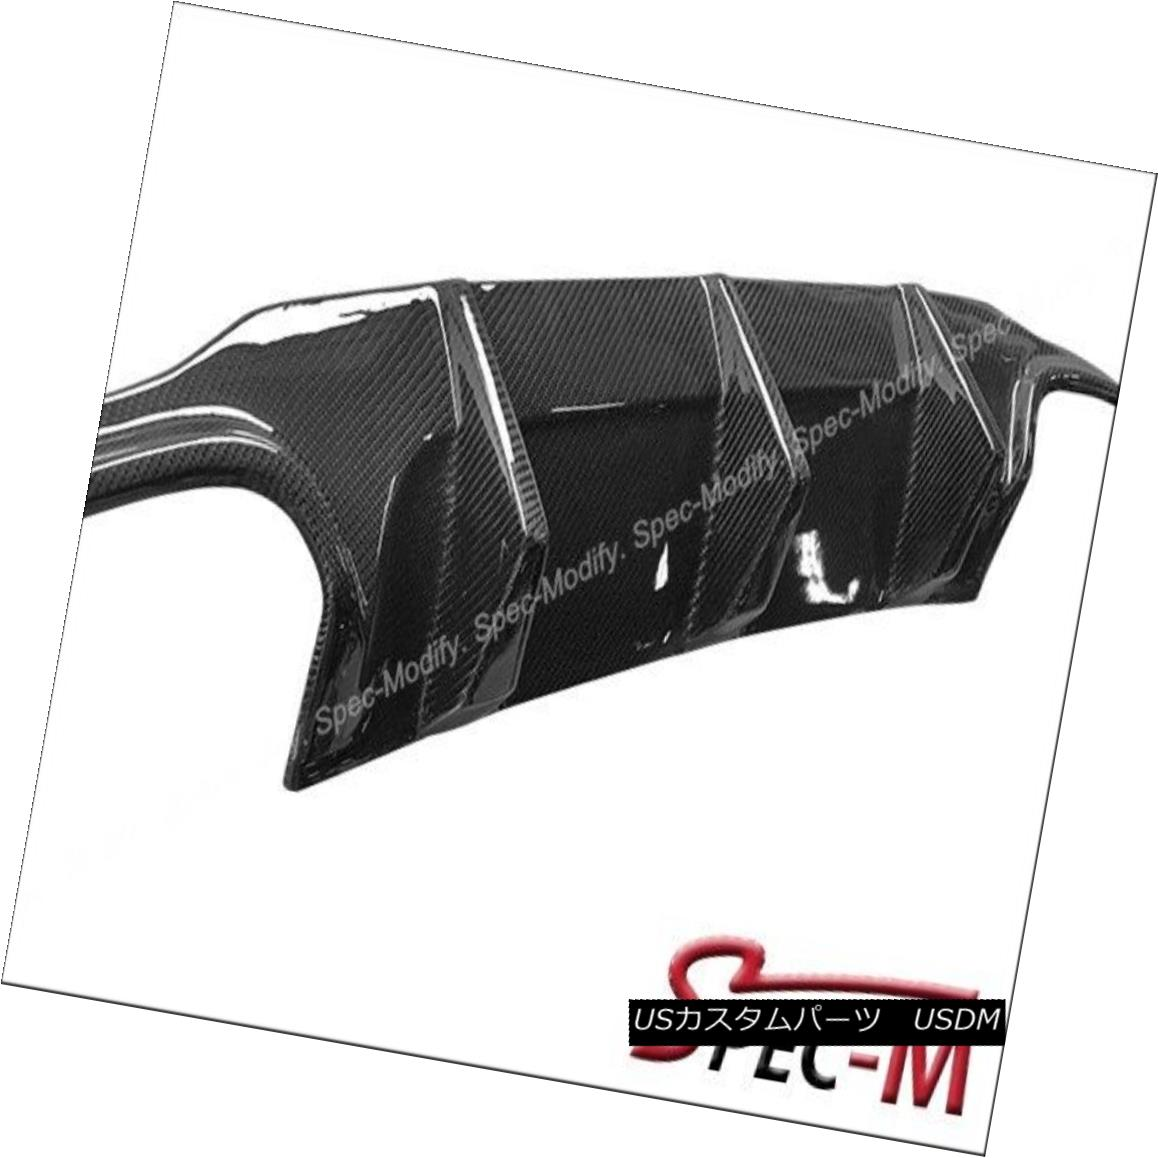 エアロパーツ Carbon Fiber Bumper Diffuser Replacement 2012+ C200 C250 C300 C350 C63AMG Sedan 炭素繊維バンパーディフューザー交換+ 2012 C200 C250 C300 C350 C63AMGセダン